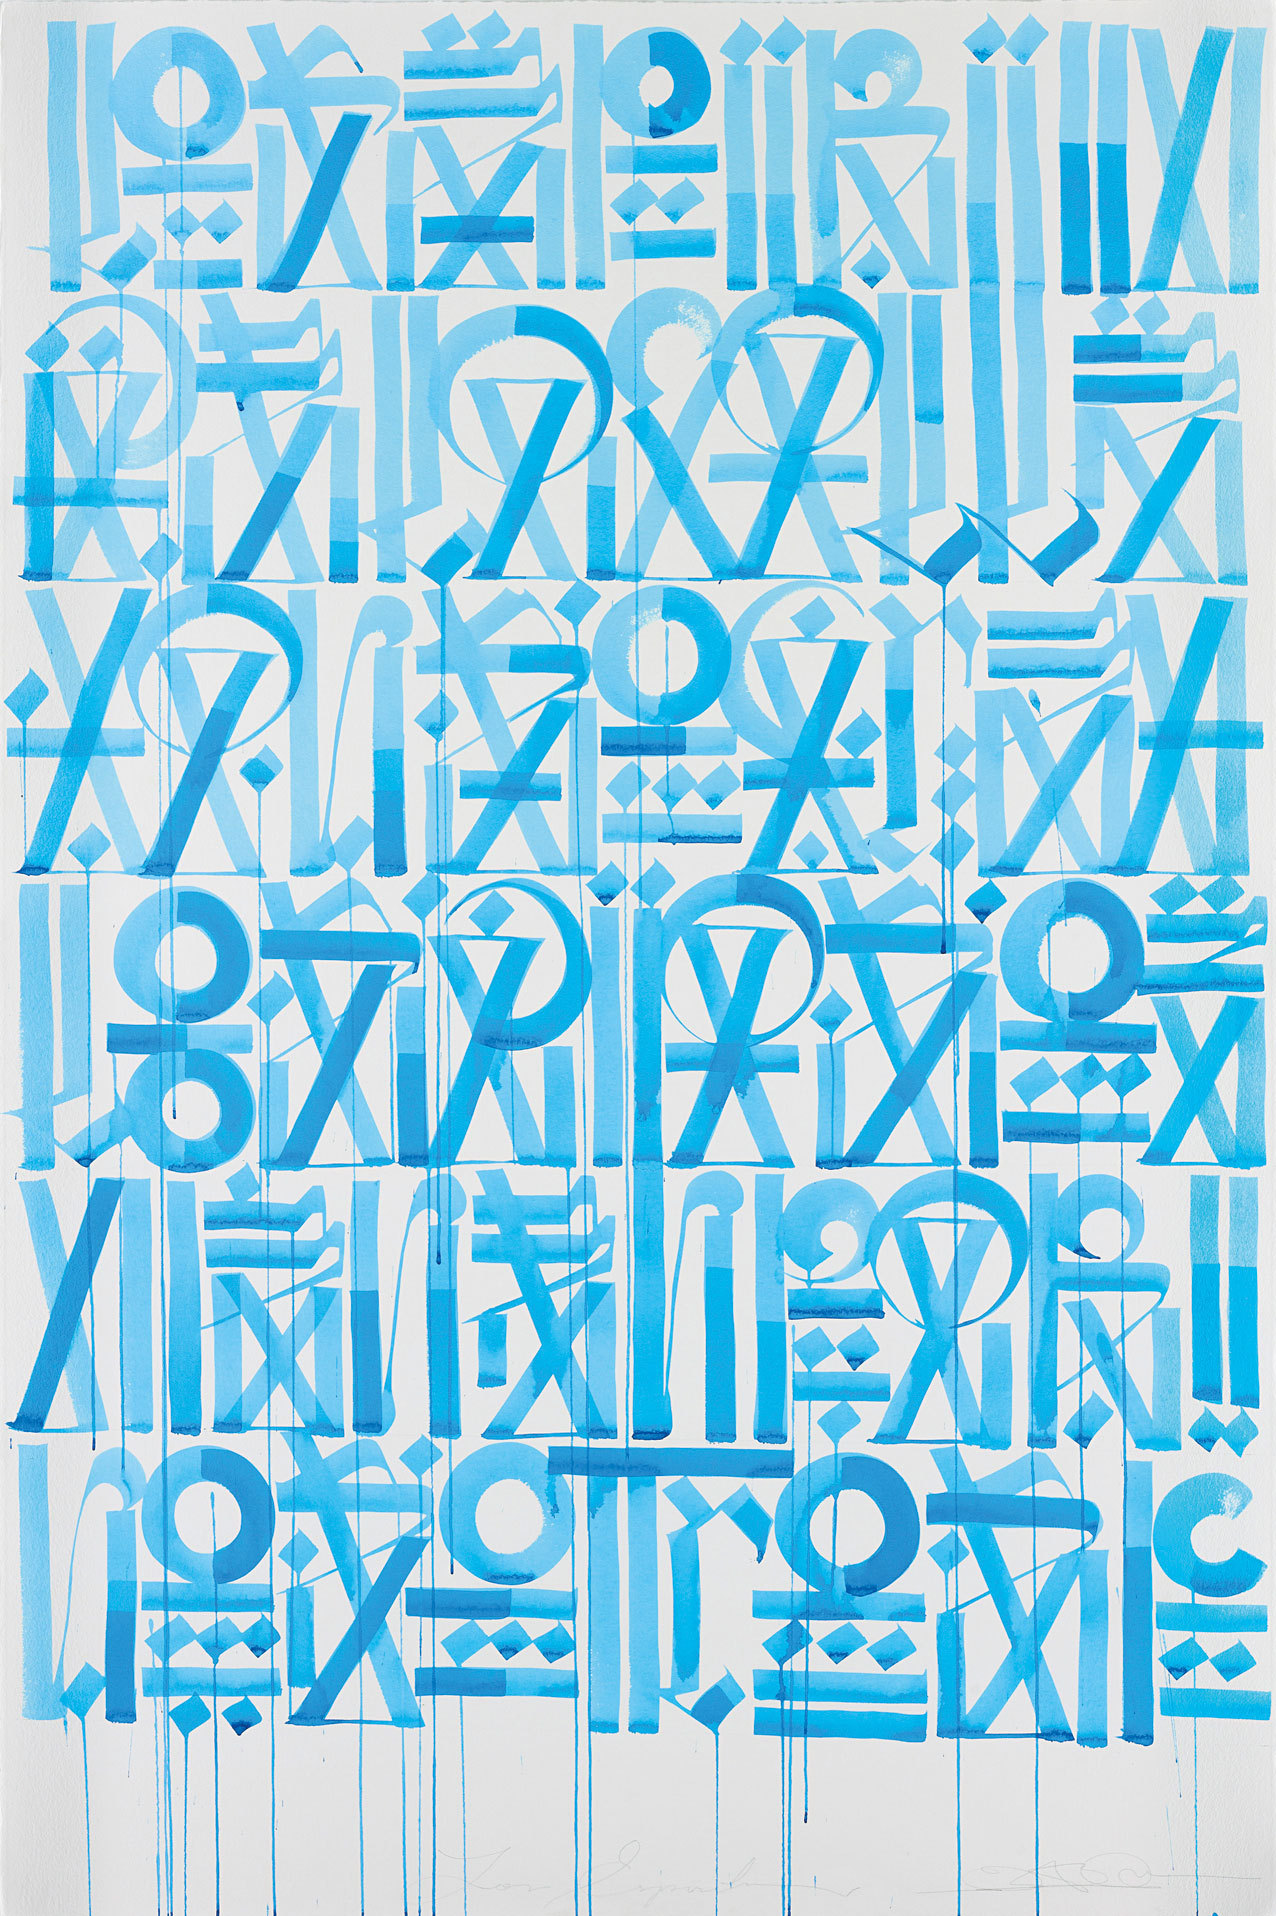 RETNA (MARQUIS LEWIS) | Los Espiritus, 2011 | watercolour on Somerset paper  Sold for £10,625 at the Under the Influence sale, 13 December 2012, London.